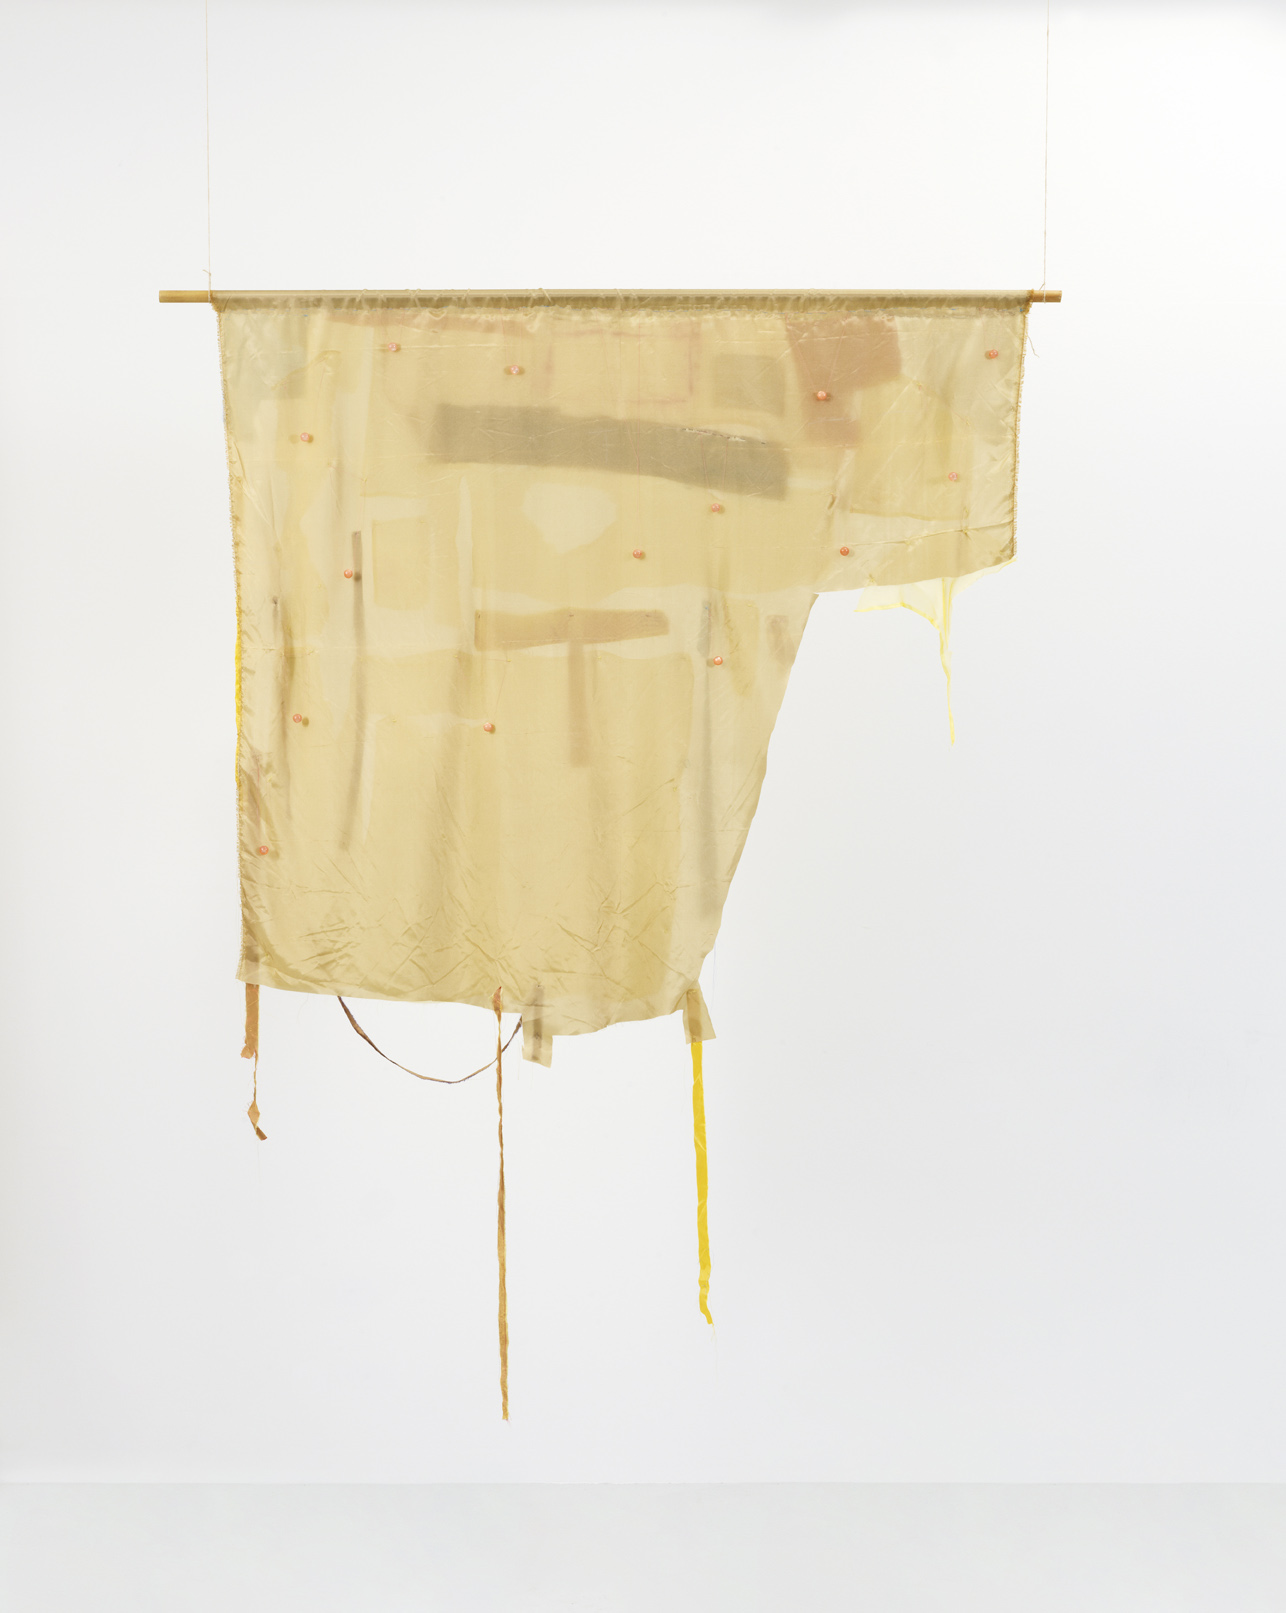 - 27. Peter Brandt. Yes and More No, 2016-17. Sculptural two-sided banner, applicated fabric, embroidery, pearls, oil paint, pencil and wood. 193 x 135 x 2 cm.